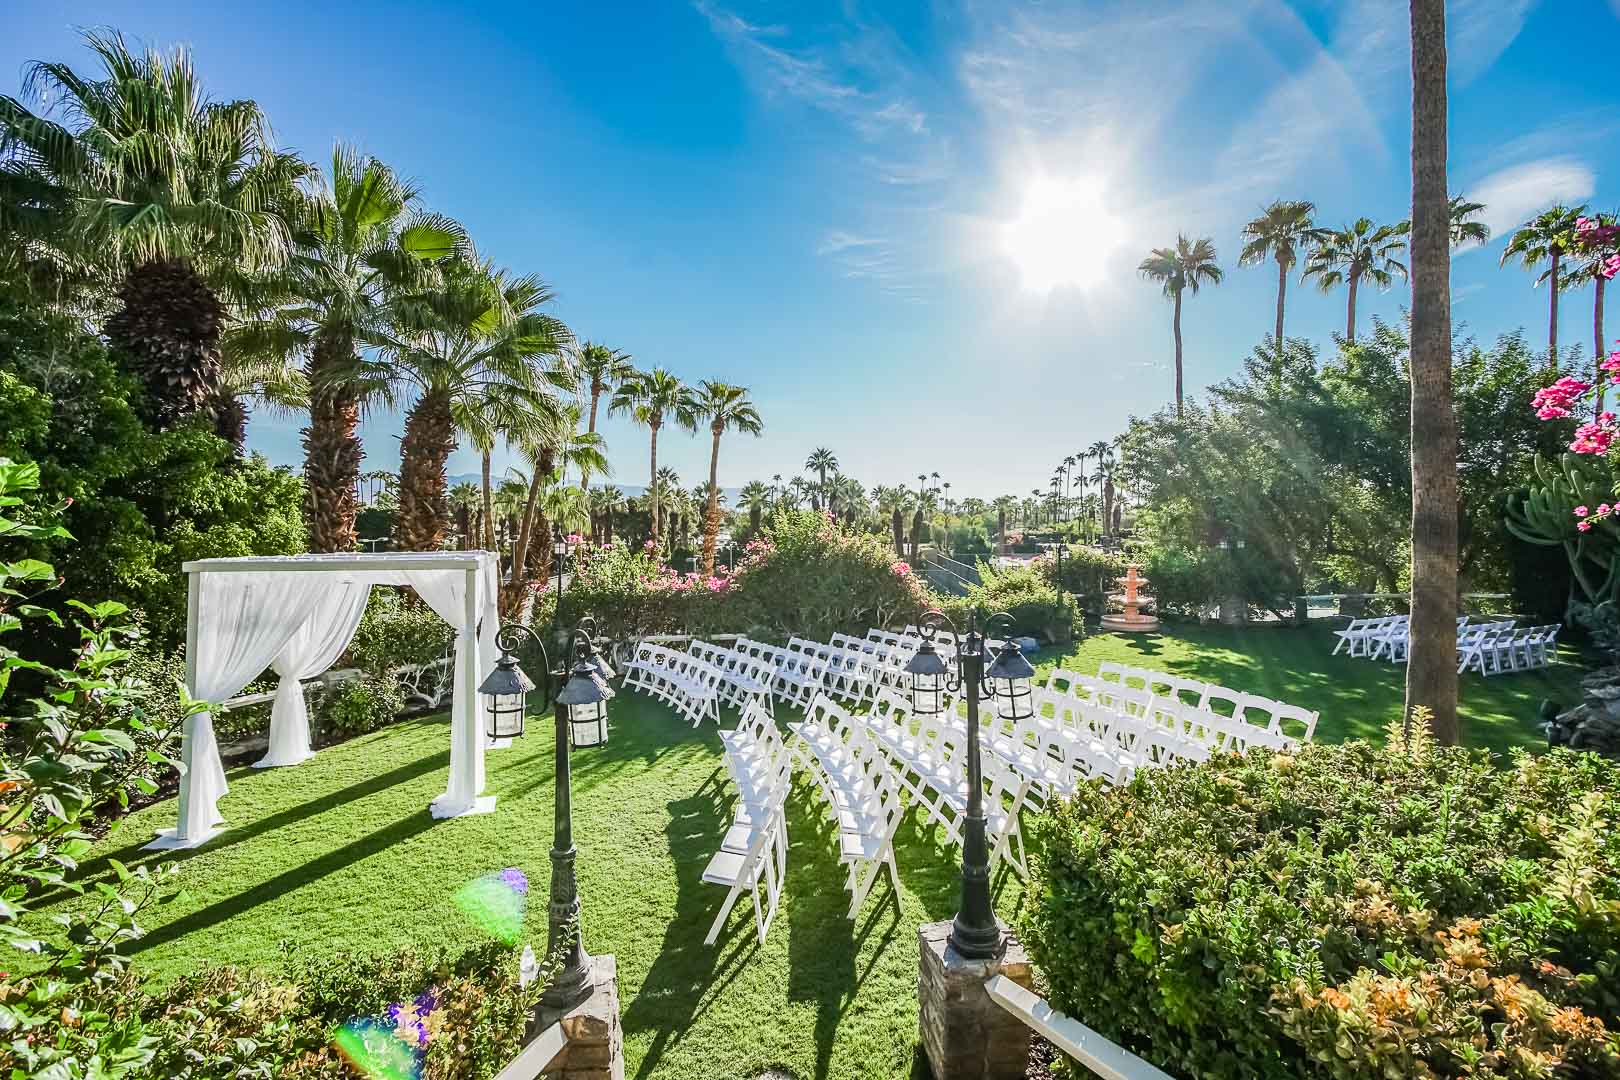 A breathtaking view of an outdoor wedding ceremony at VRI's Palm Springs Tennis Club in California.